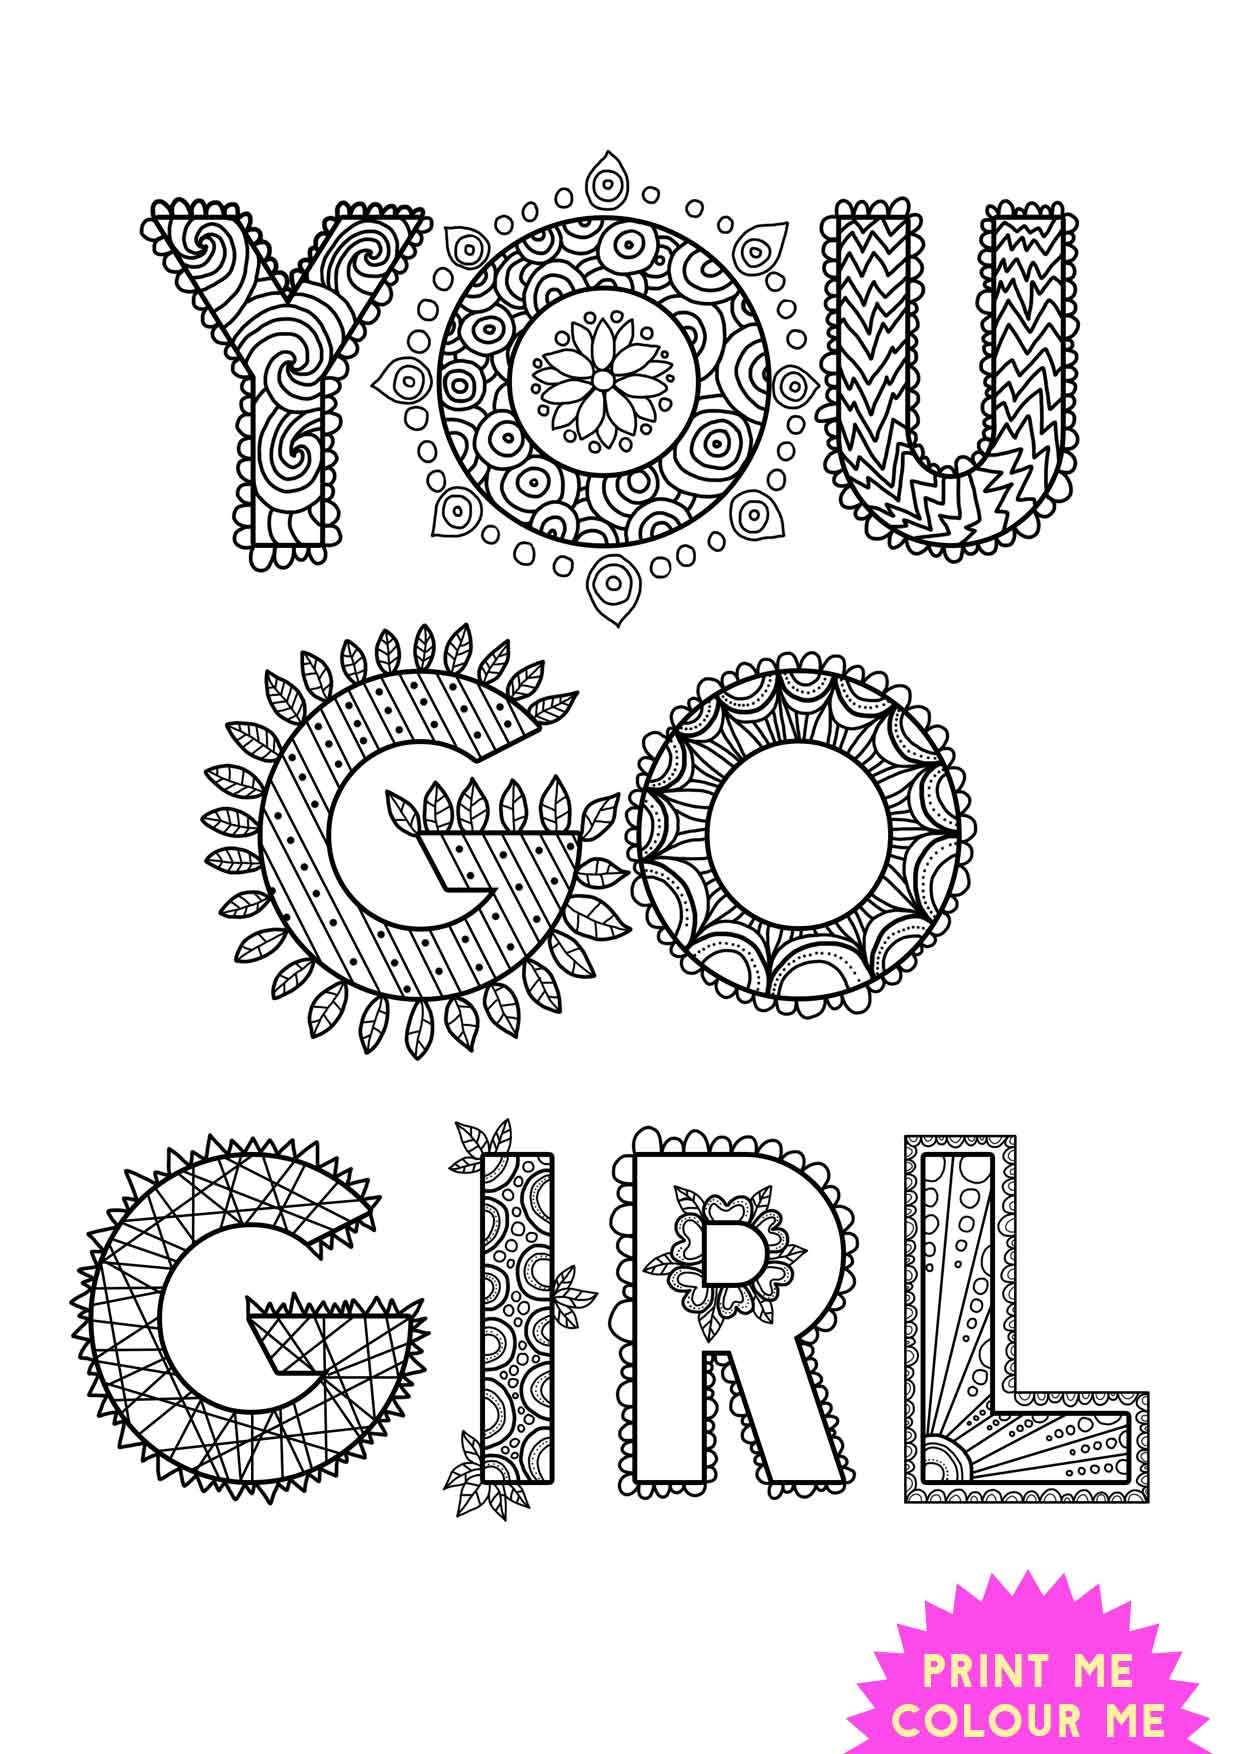 Free mindfulness colouring page womens empowerment quote you go girl this inspiring colouring page represents the girl power message and is intended to be